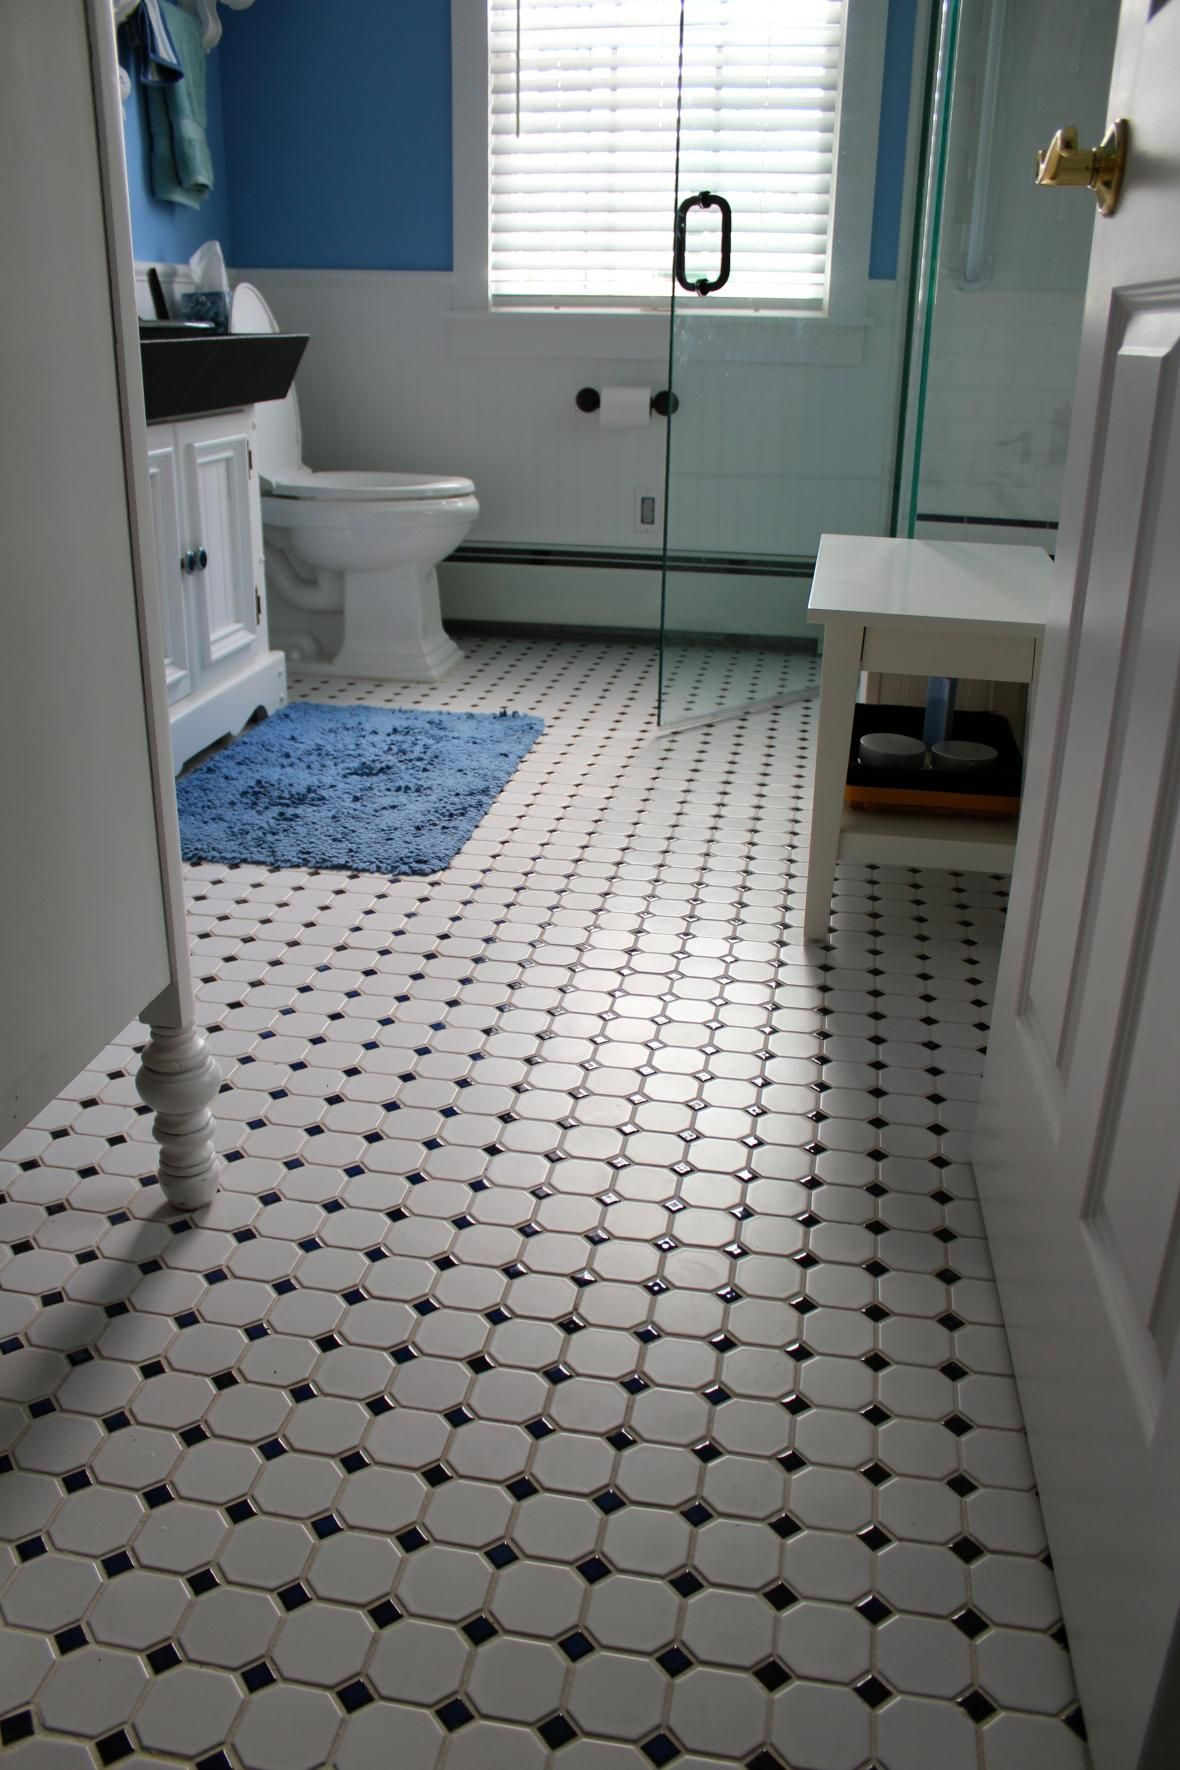 25 Awesome Vintage Bathroom Design Ideas | Bathroom ...